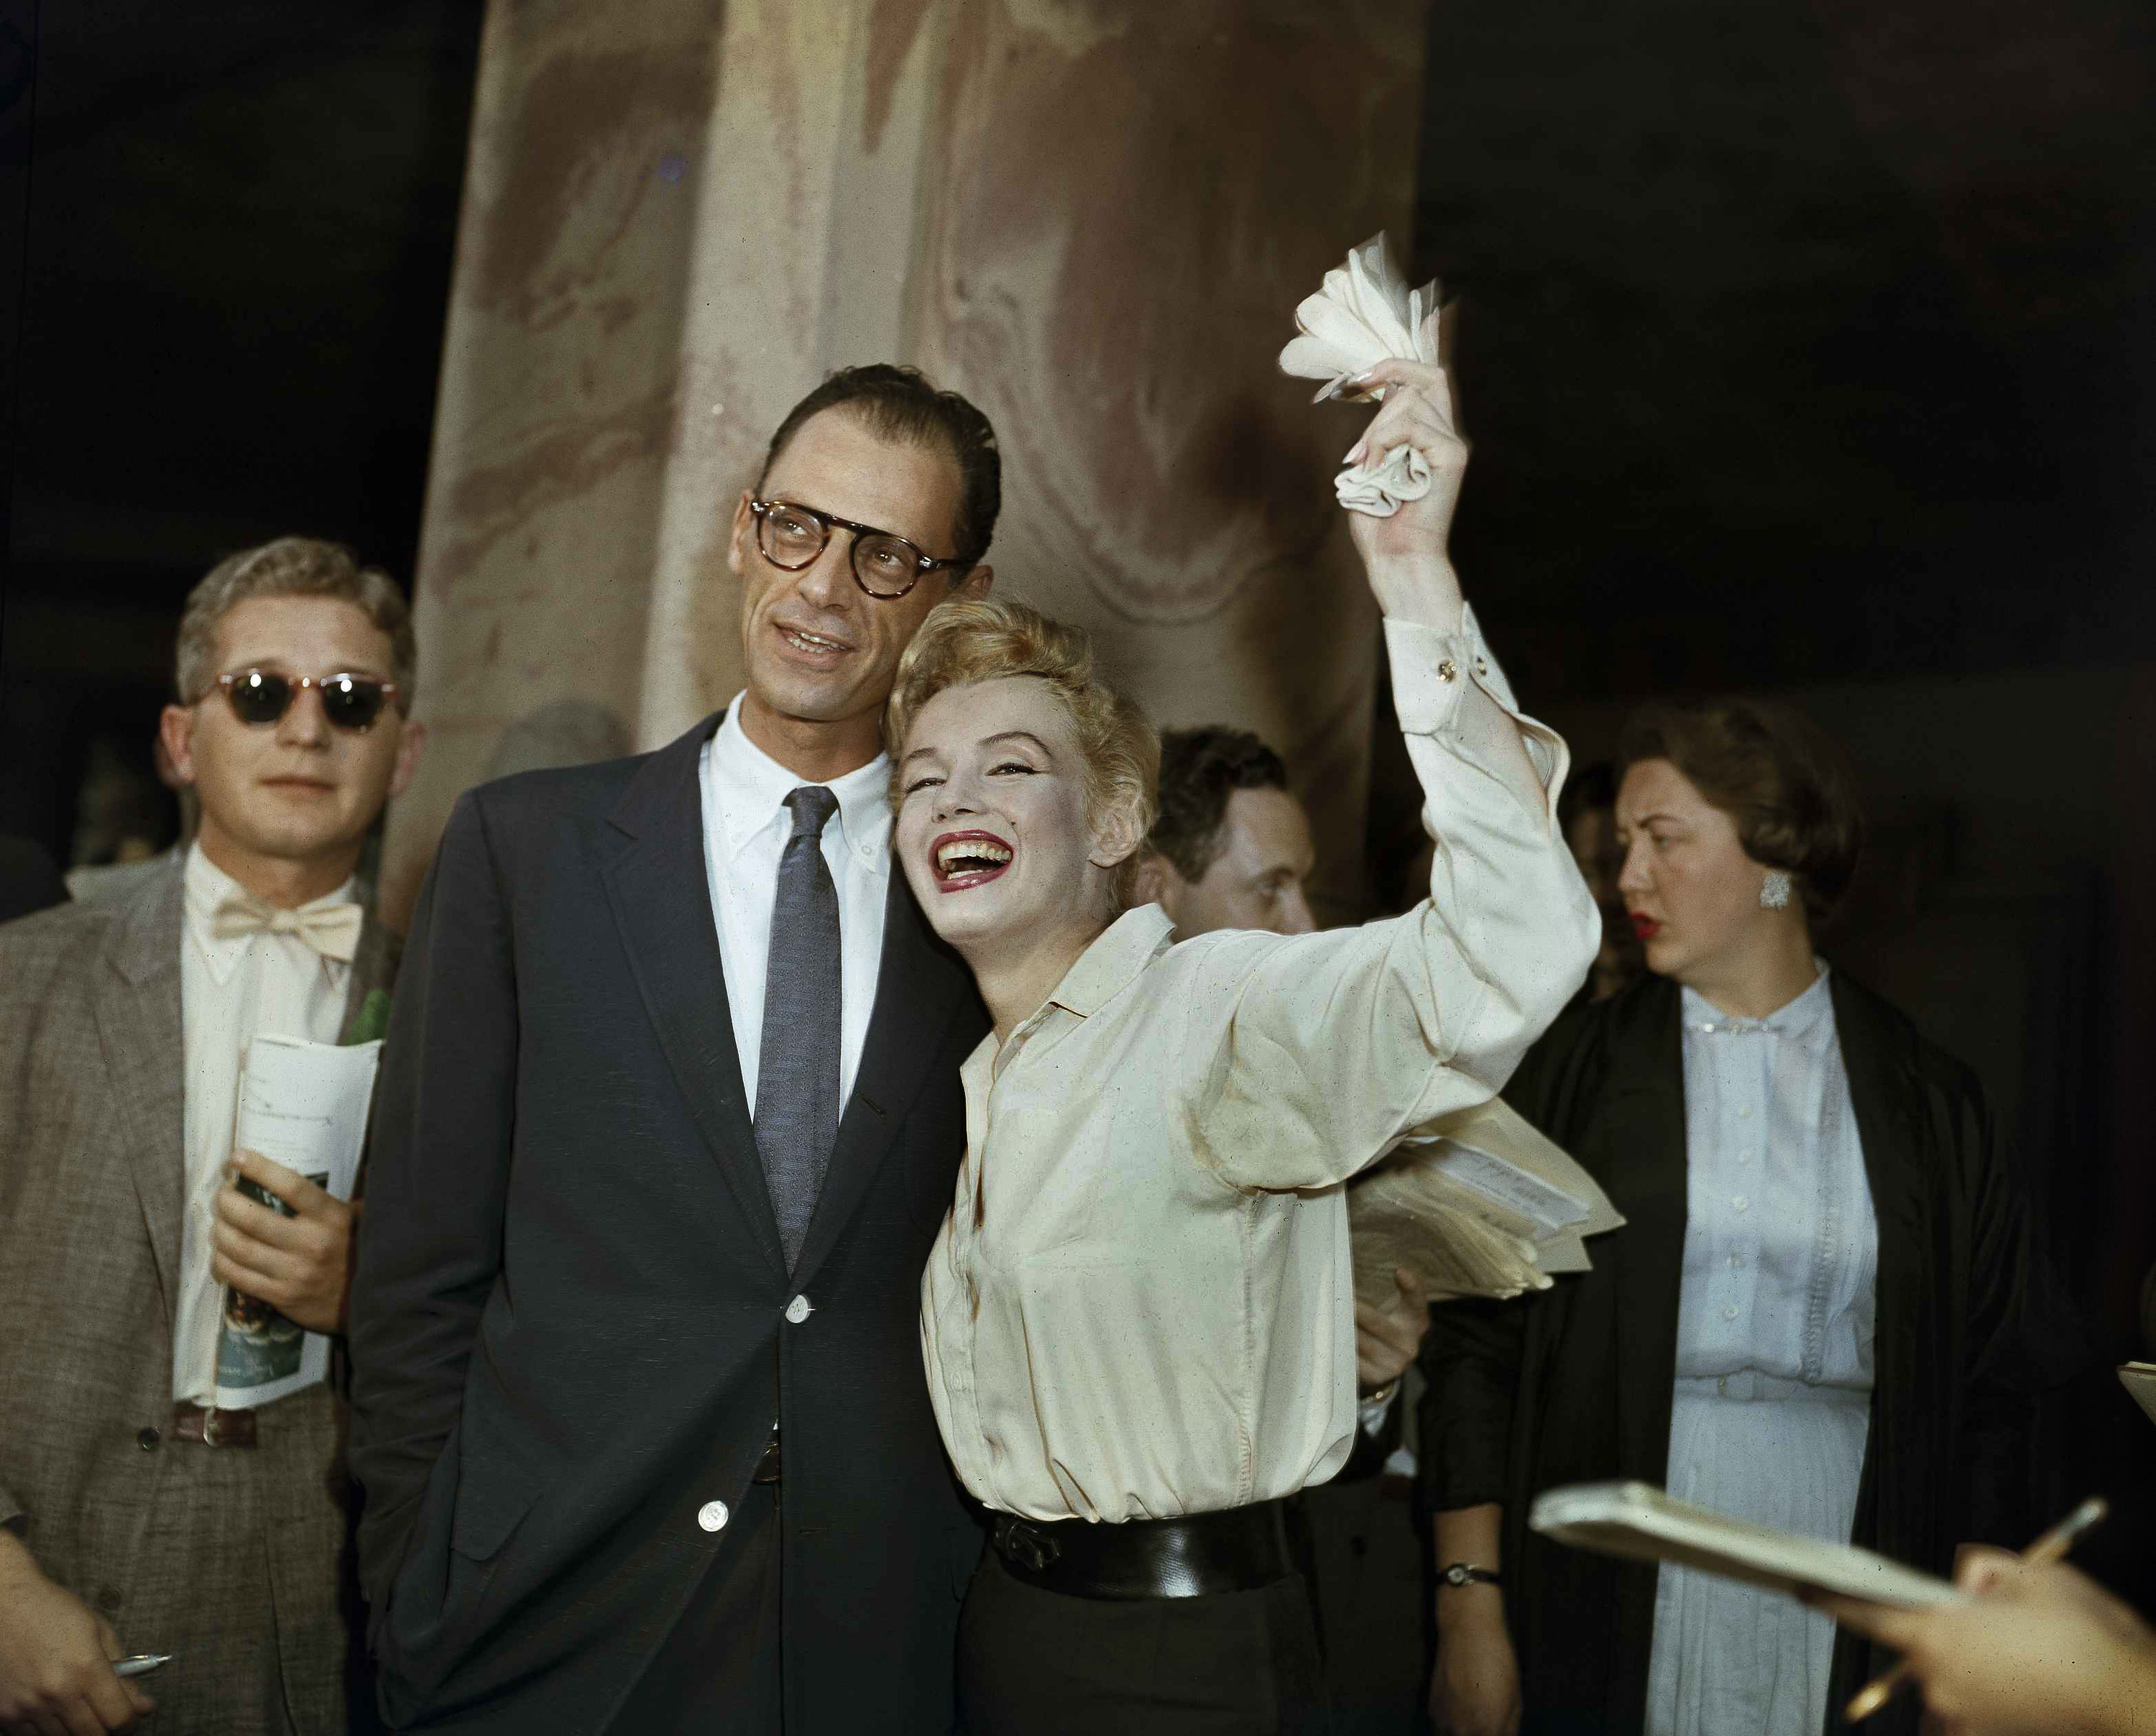 Marilyn Monroe smiles widely and waves her gloves in one hand as she stands next to her husband Arthur Miller